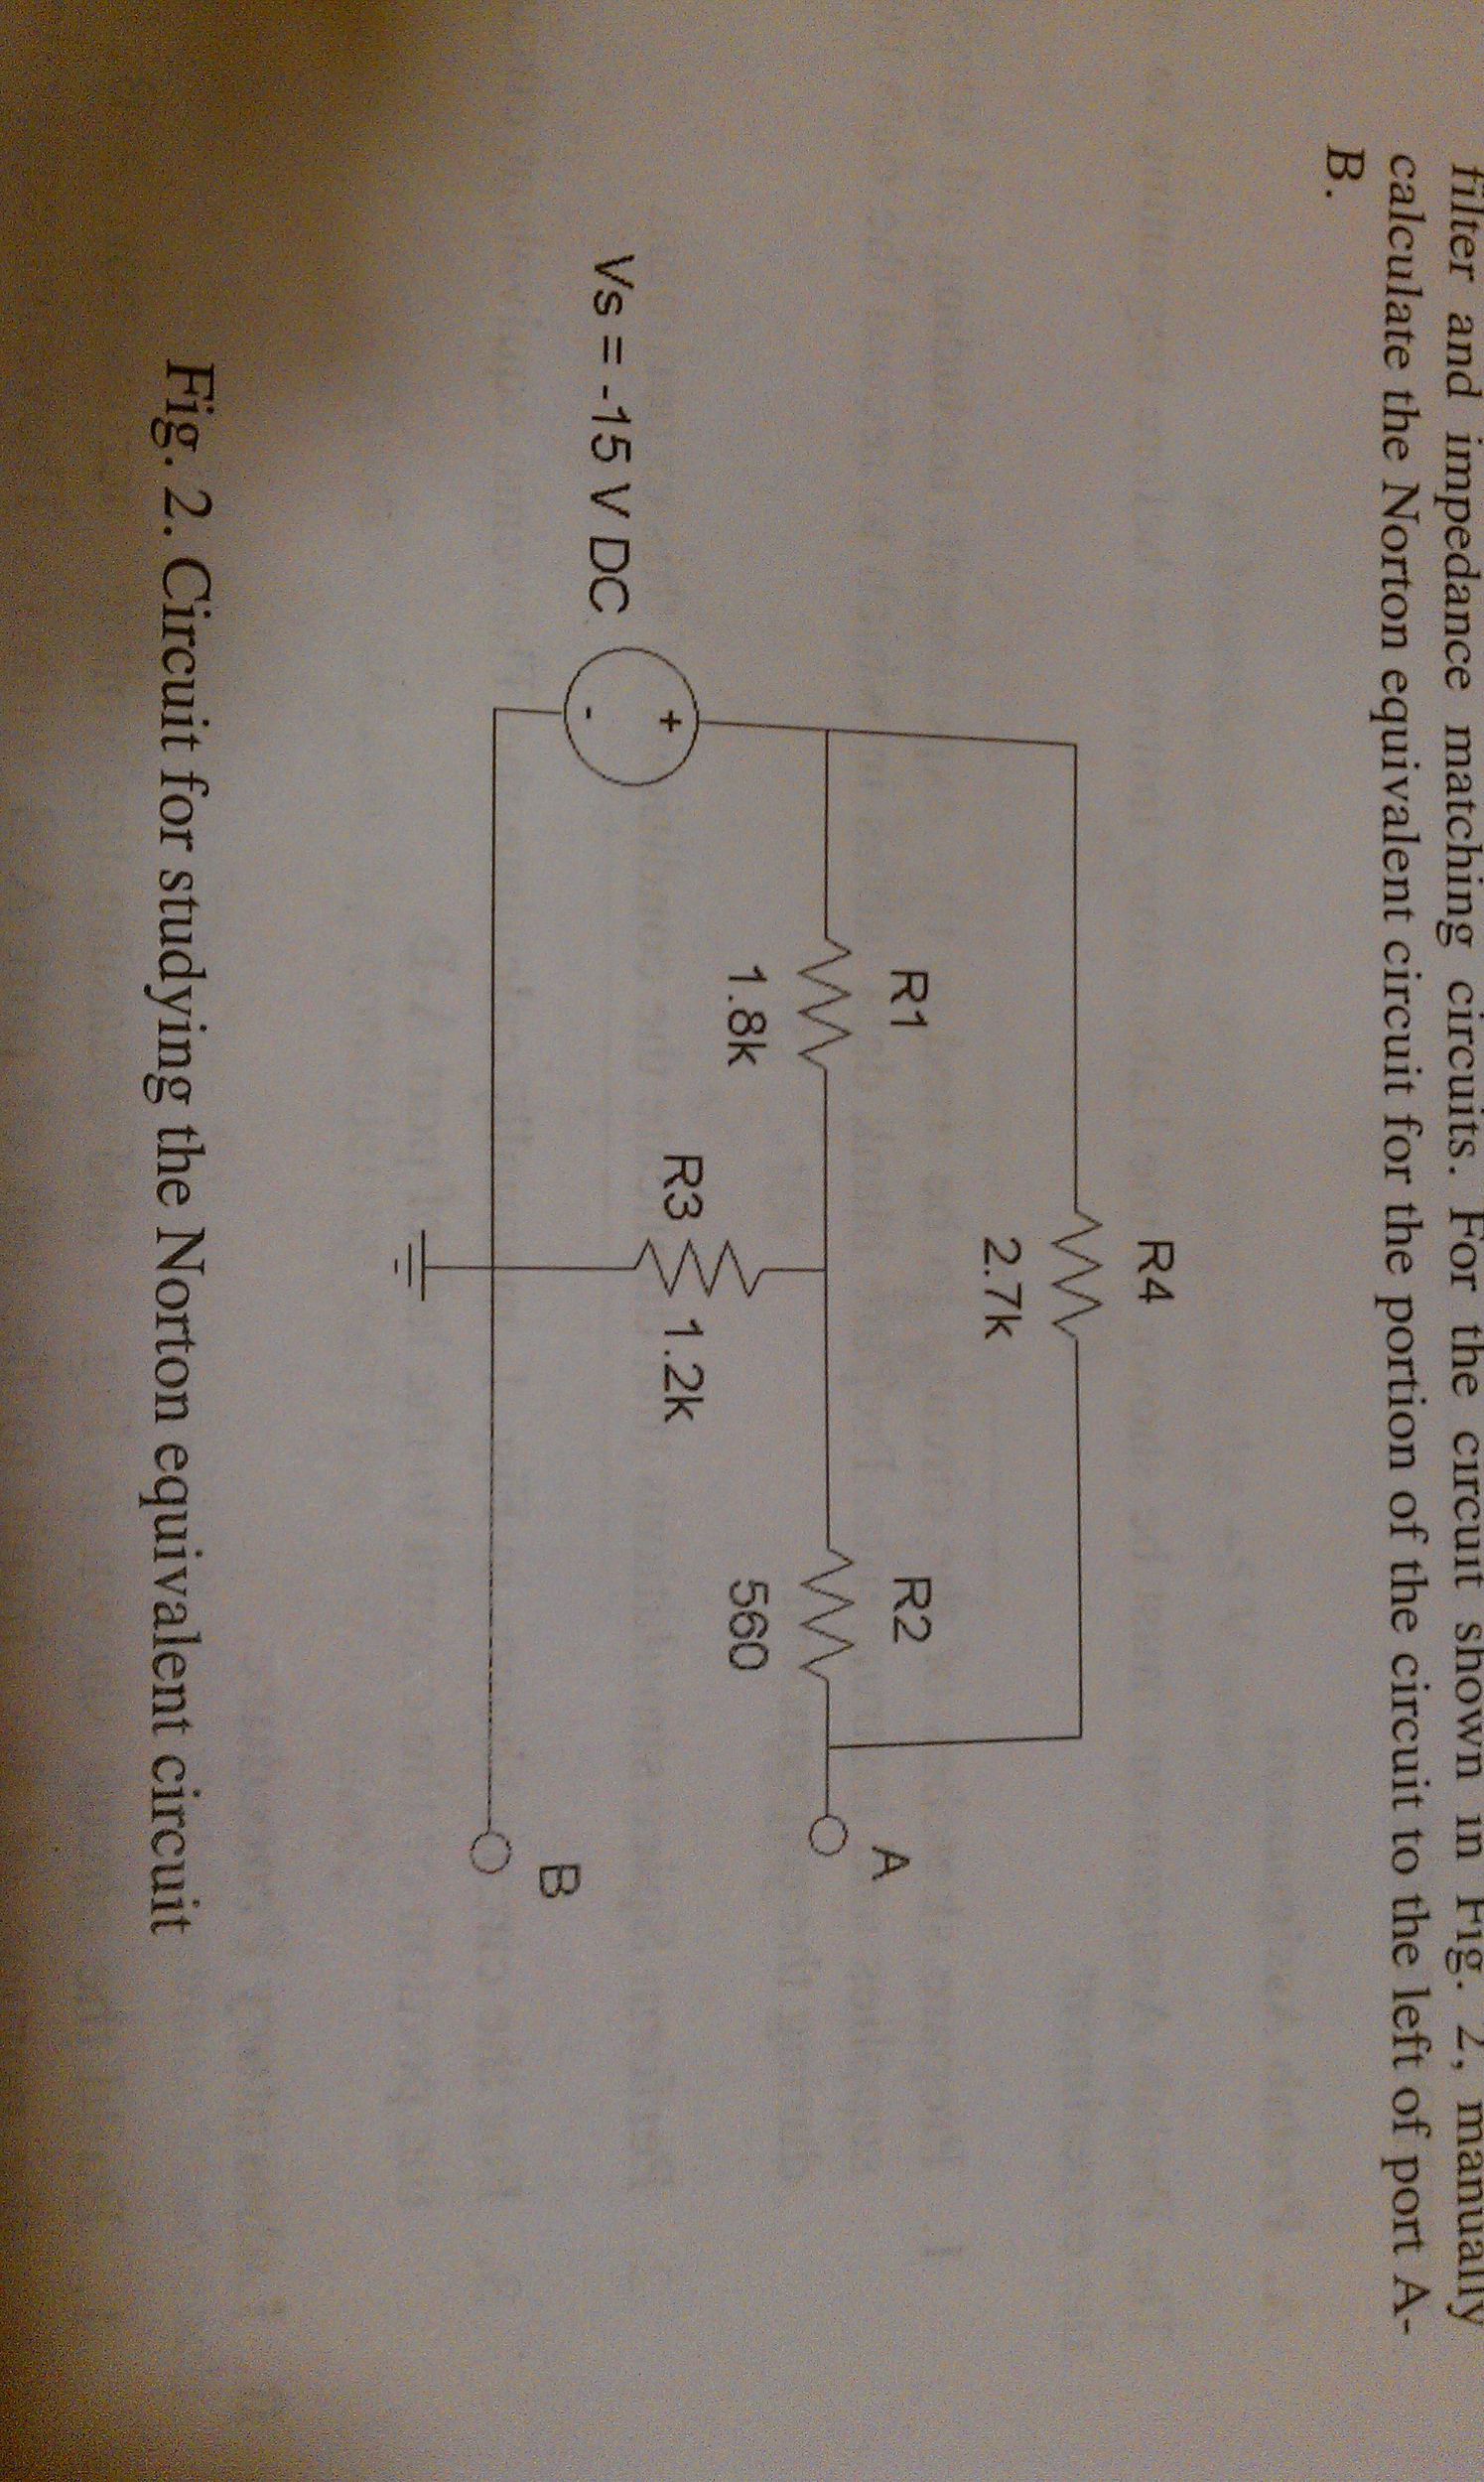 filter and impedance matching circuits. For the ci